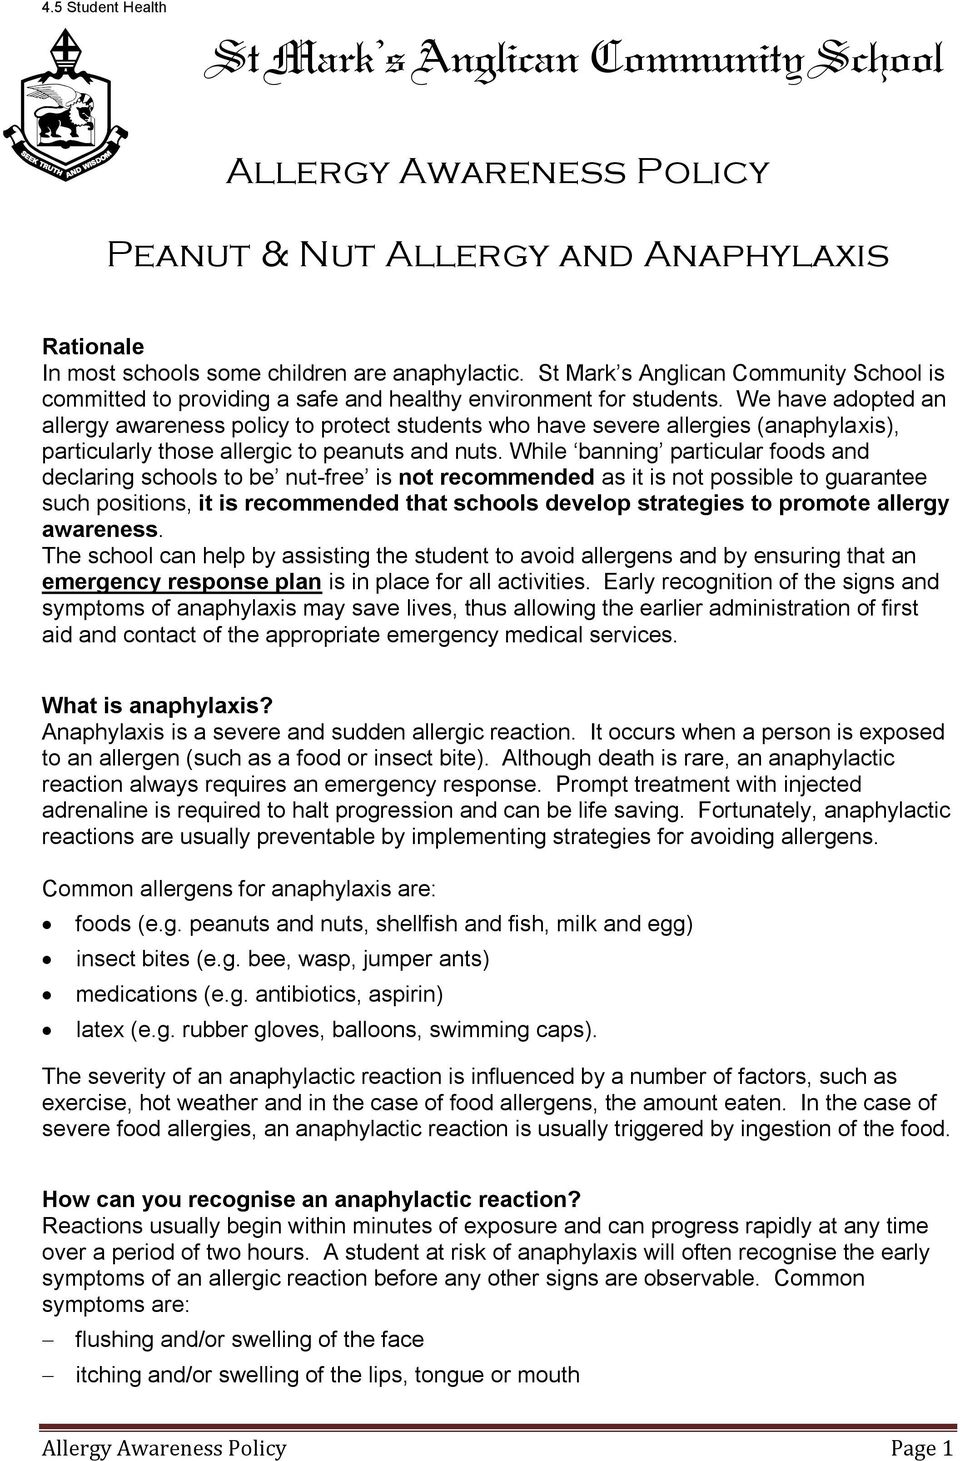 We have adopted an allergy awareness policy to protect students who have severe allergies (anaphylaxis), particularly those allergic to peanuts and nuts.